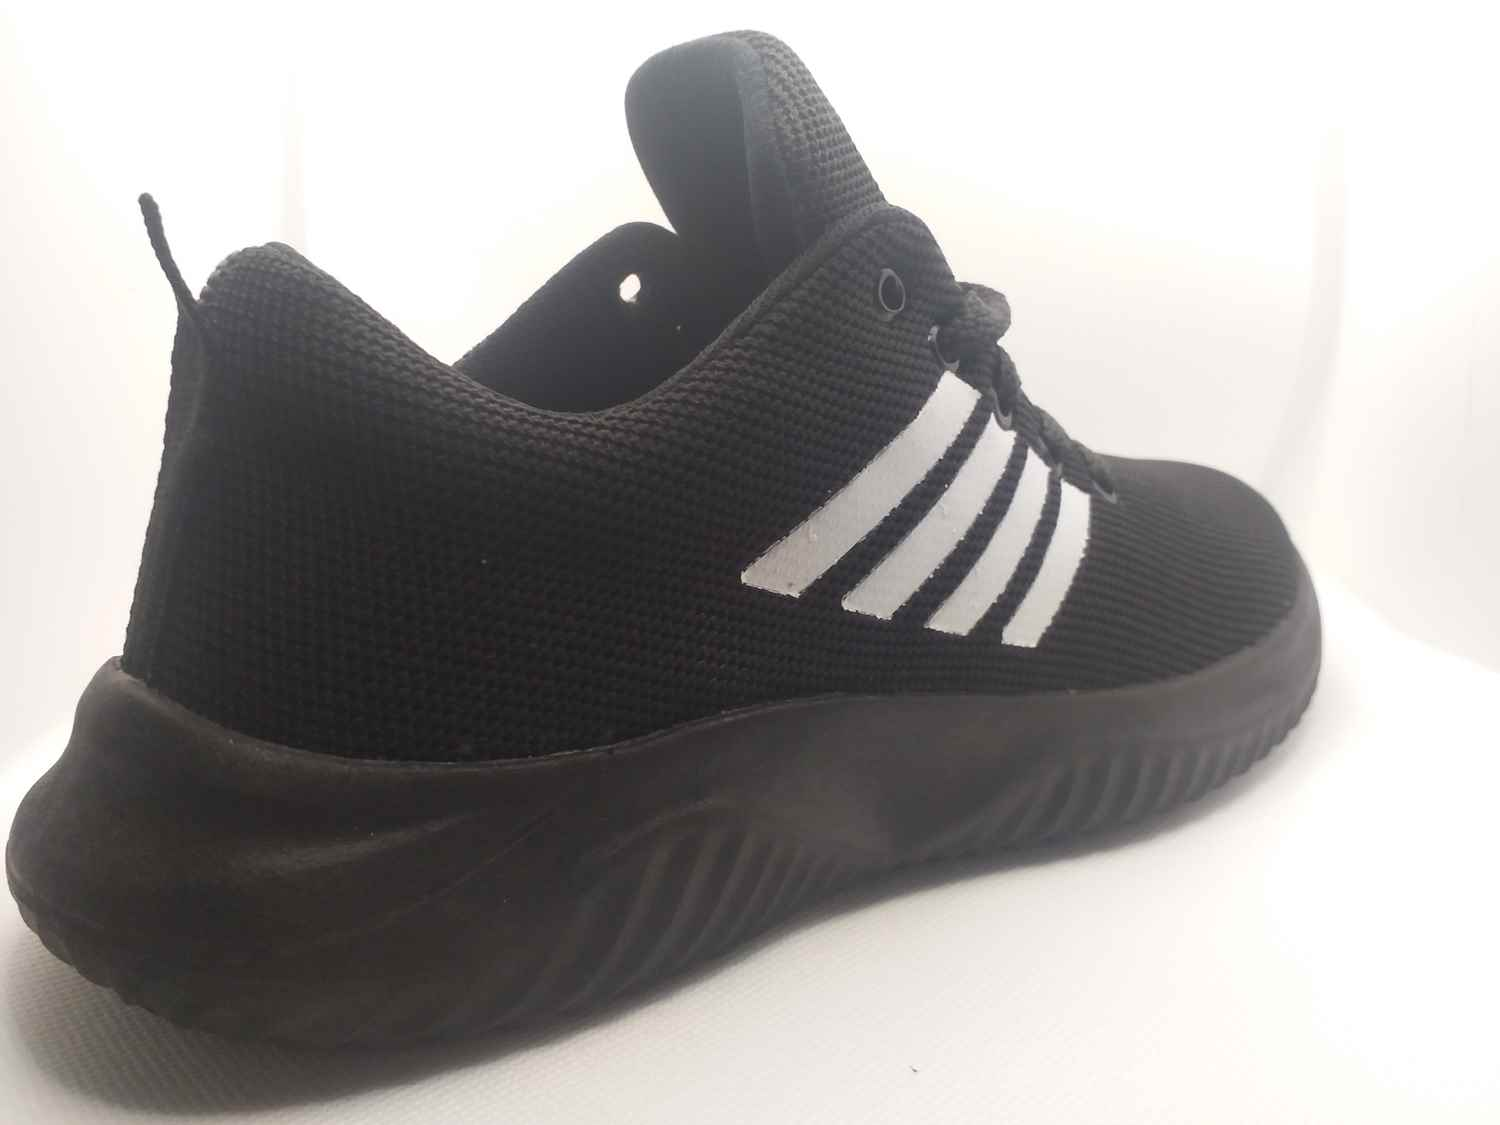 Joggers sneaker shoes for men boys running jogging shoes gym wear shoes